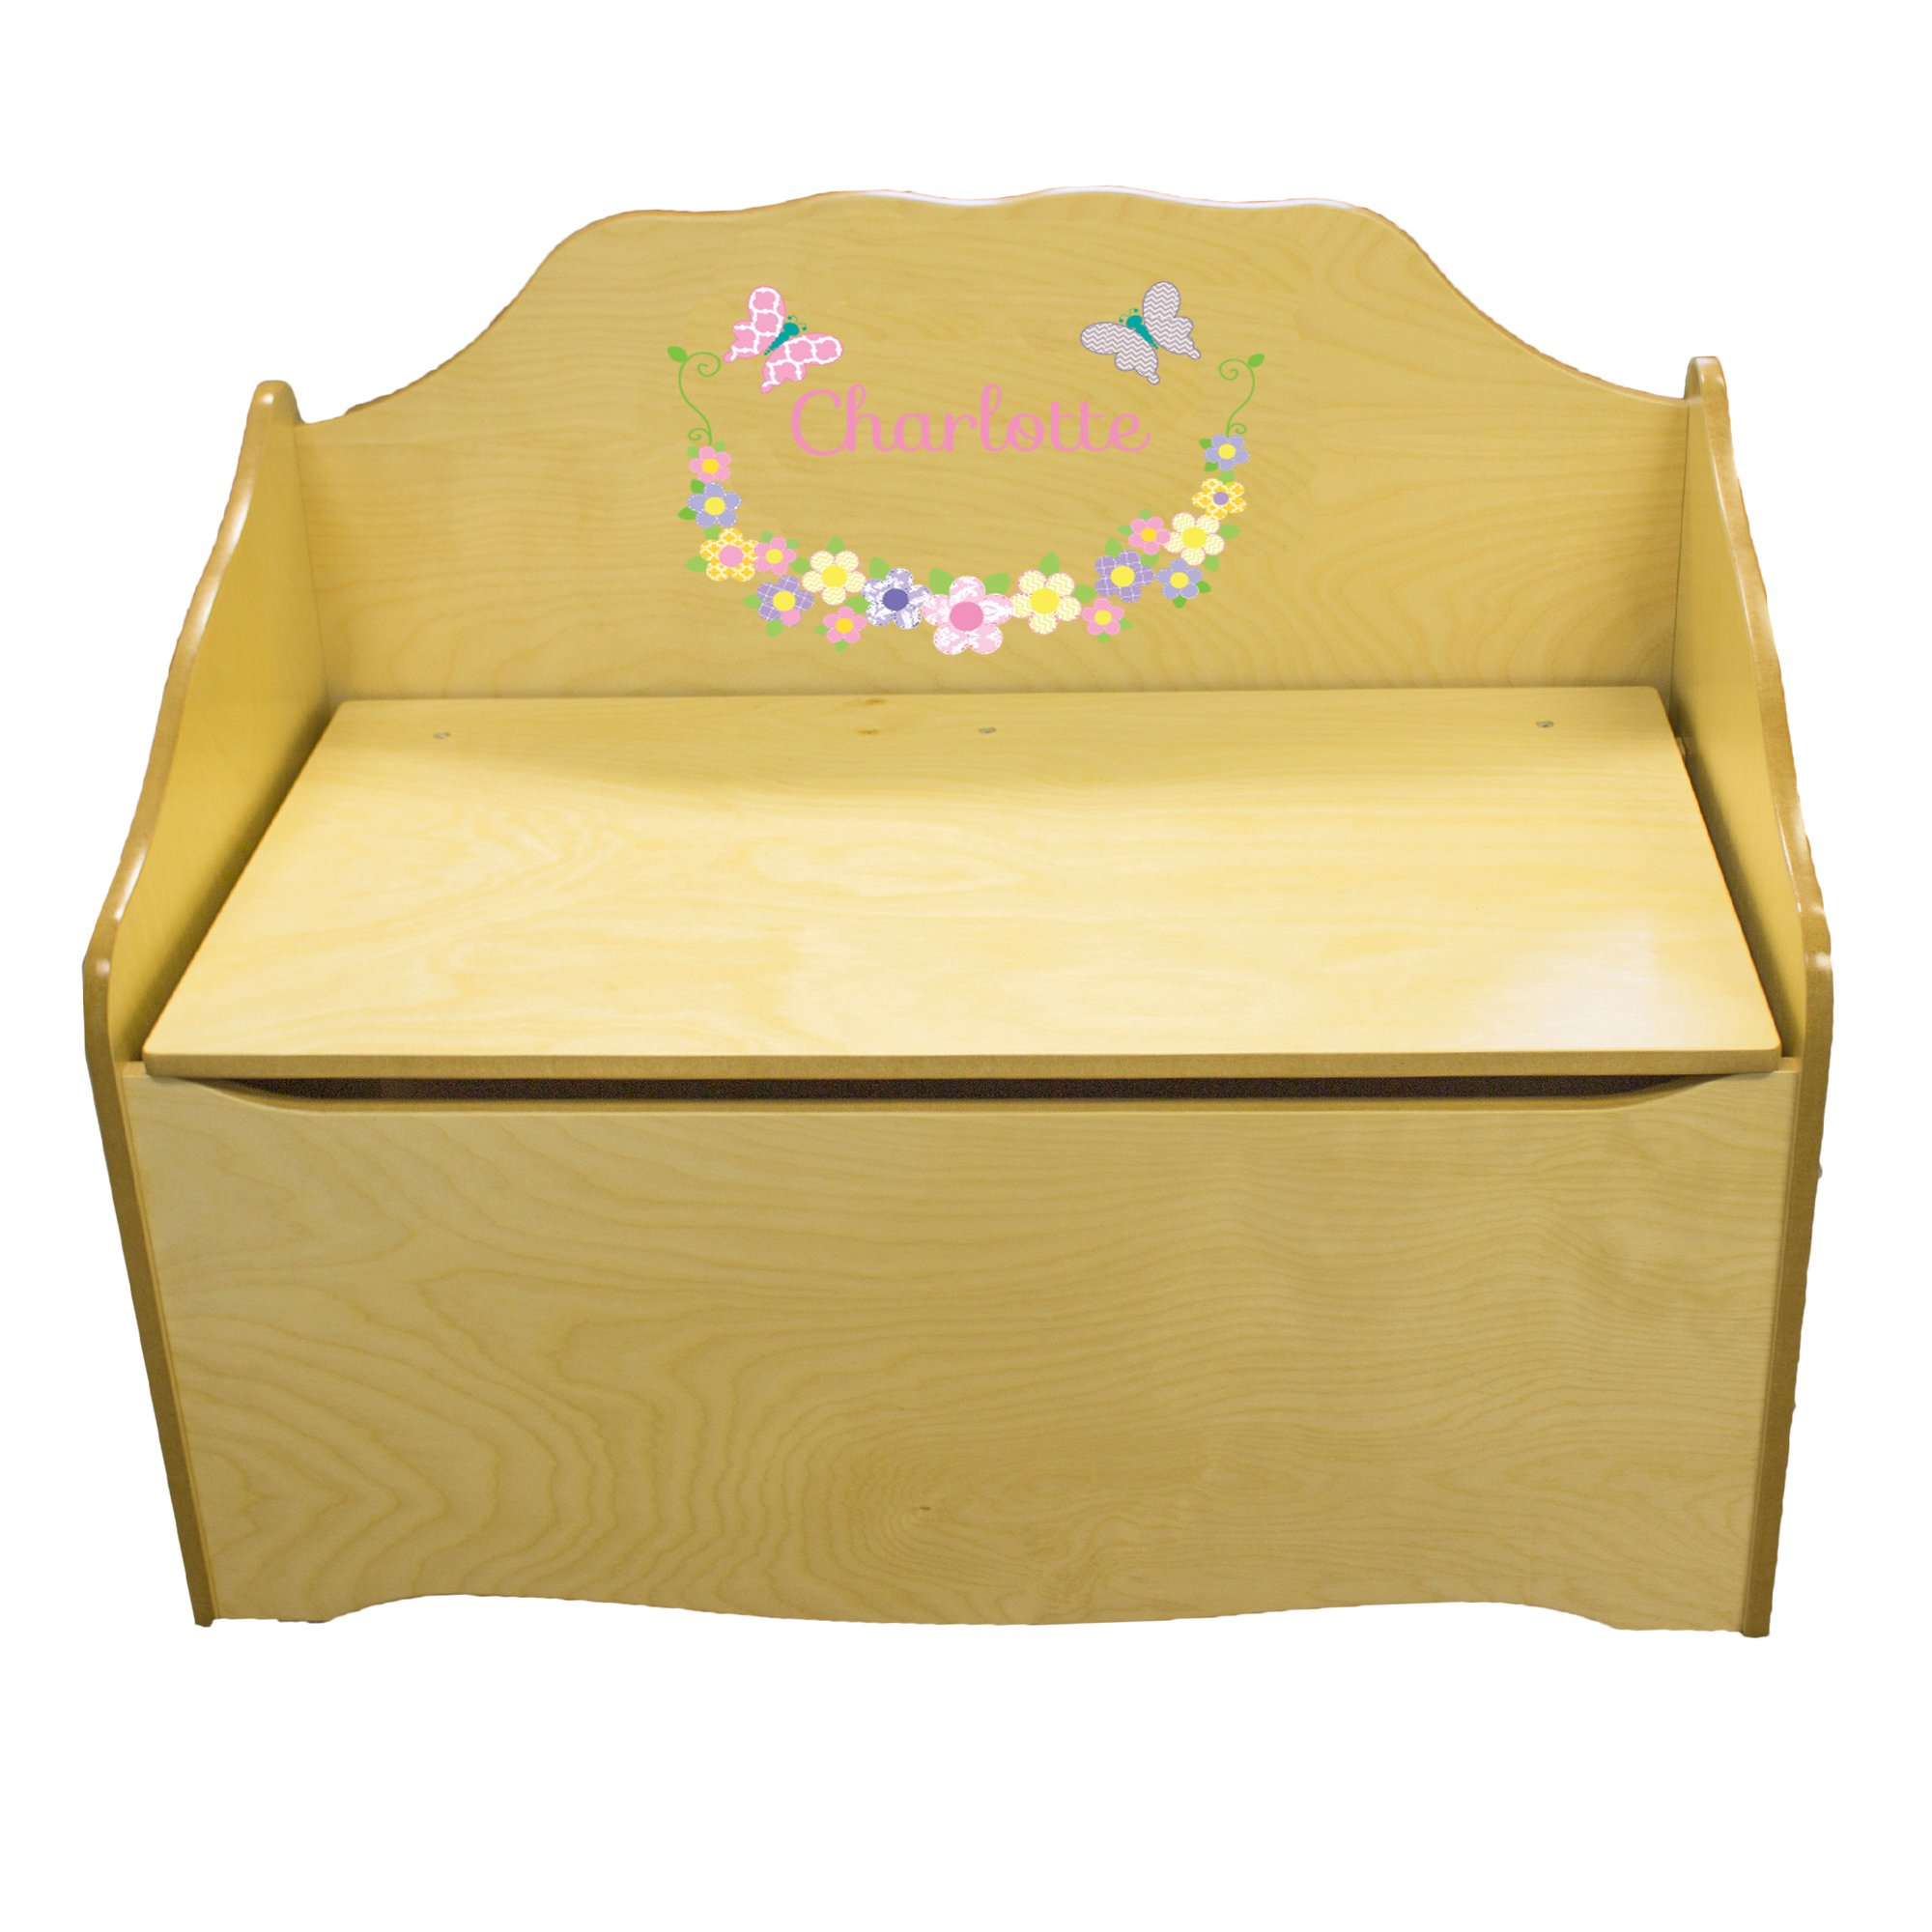 Personalized Pastel Butterflies Childrens Natural Wooden Toy Chest